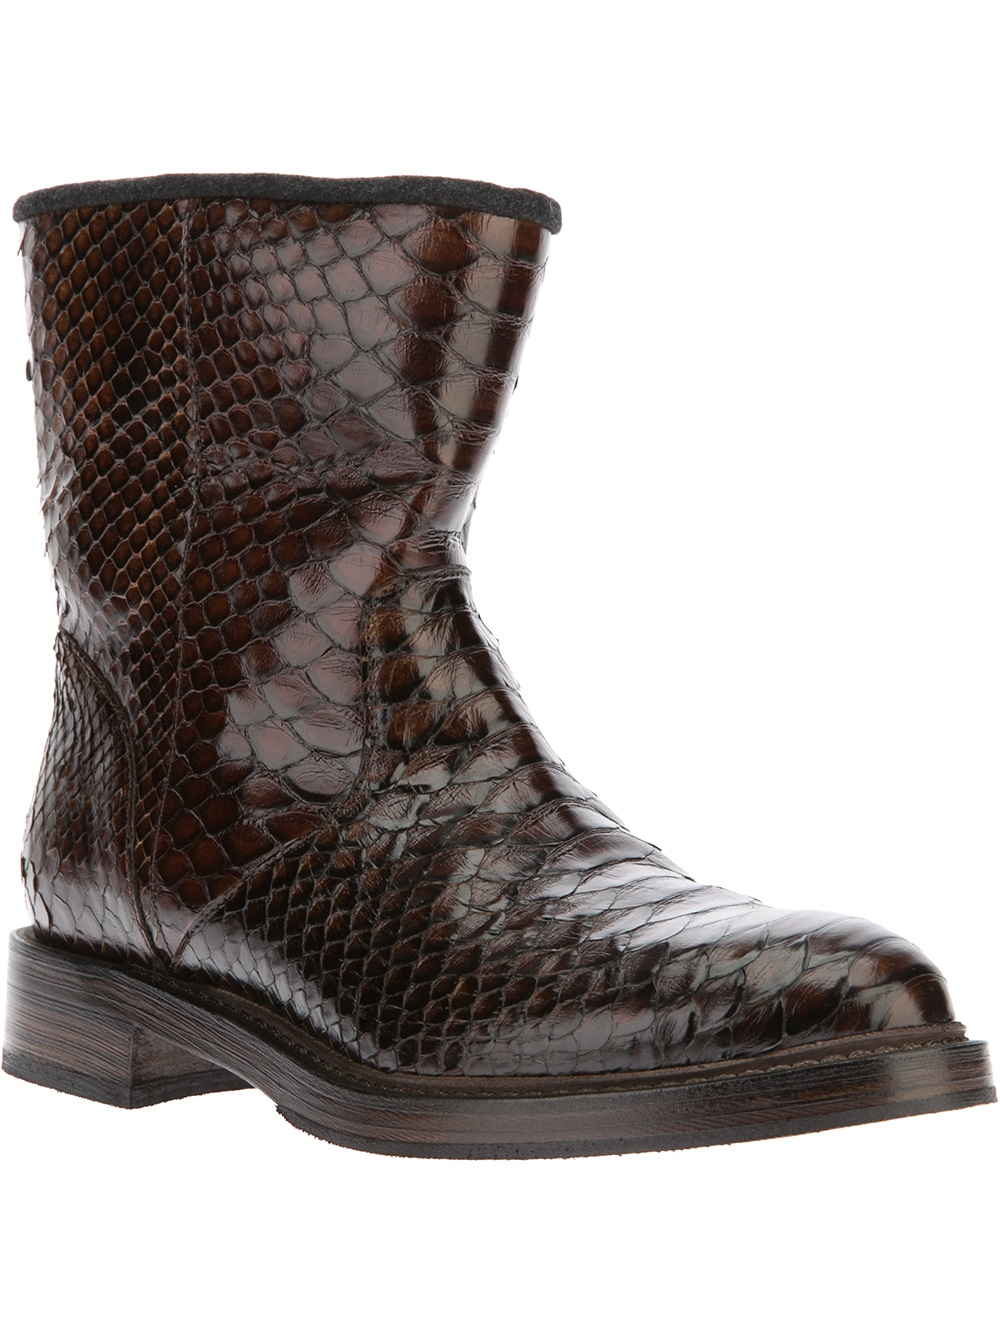 Lyst Brunello Cucinelli Snake Skin Boot In Brown